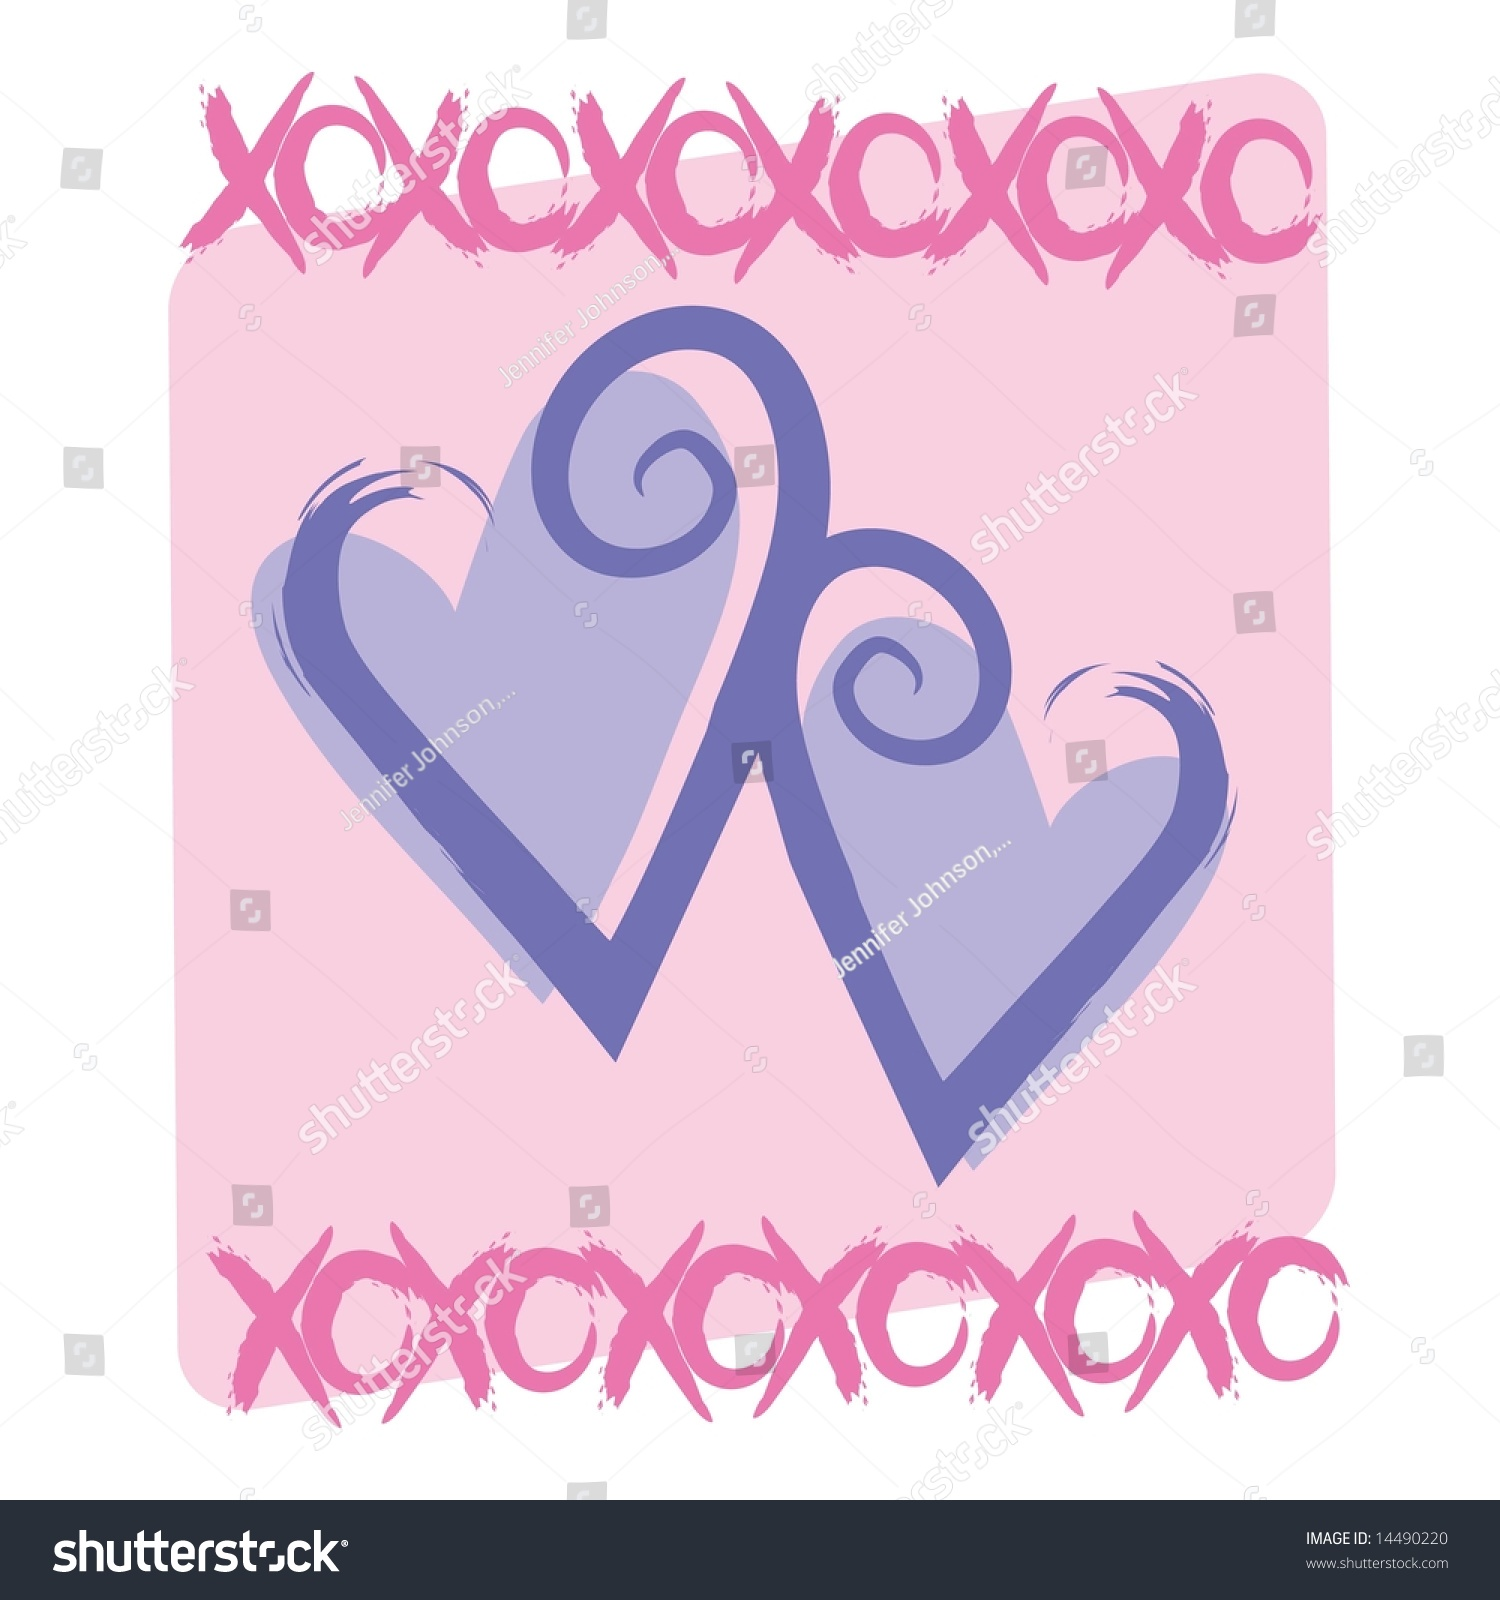 Love kisses graphic funky hearts xoxo stock illustration 14490220 love kisses graphic funky hearts xoxo stock illustration 14490220 shutterstock thecheapjerseys Choice Image